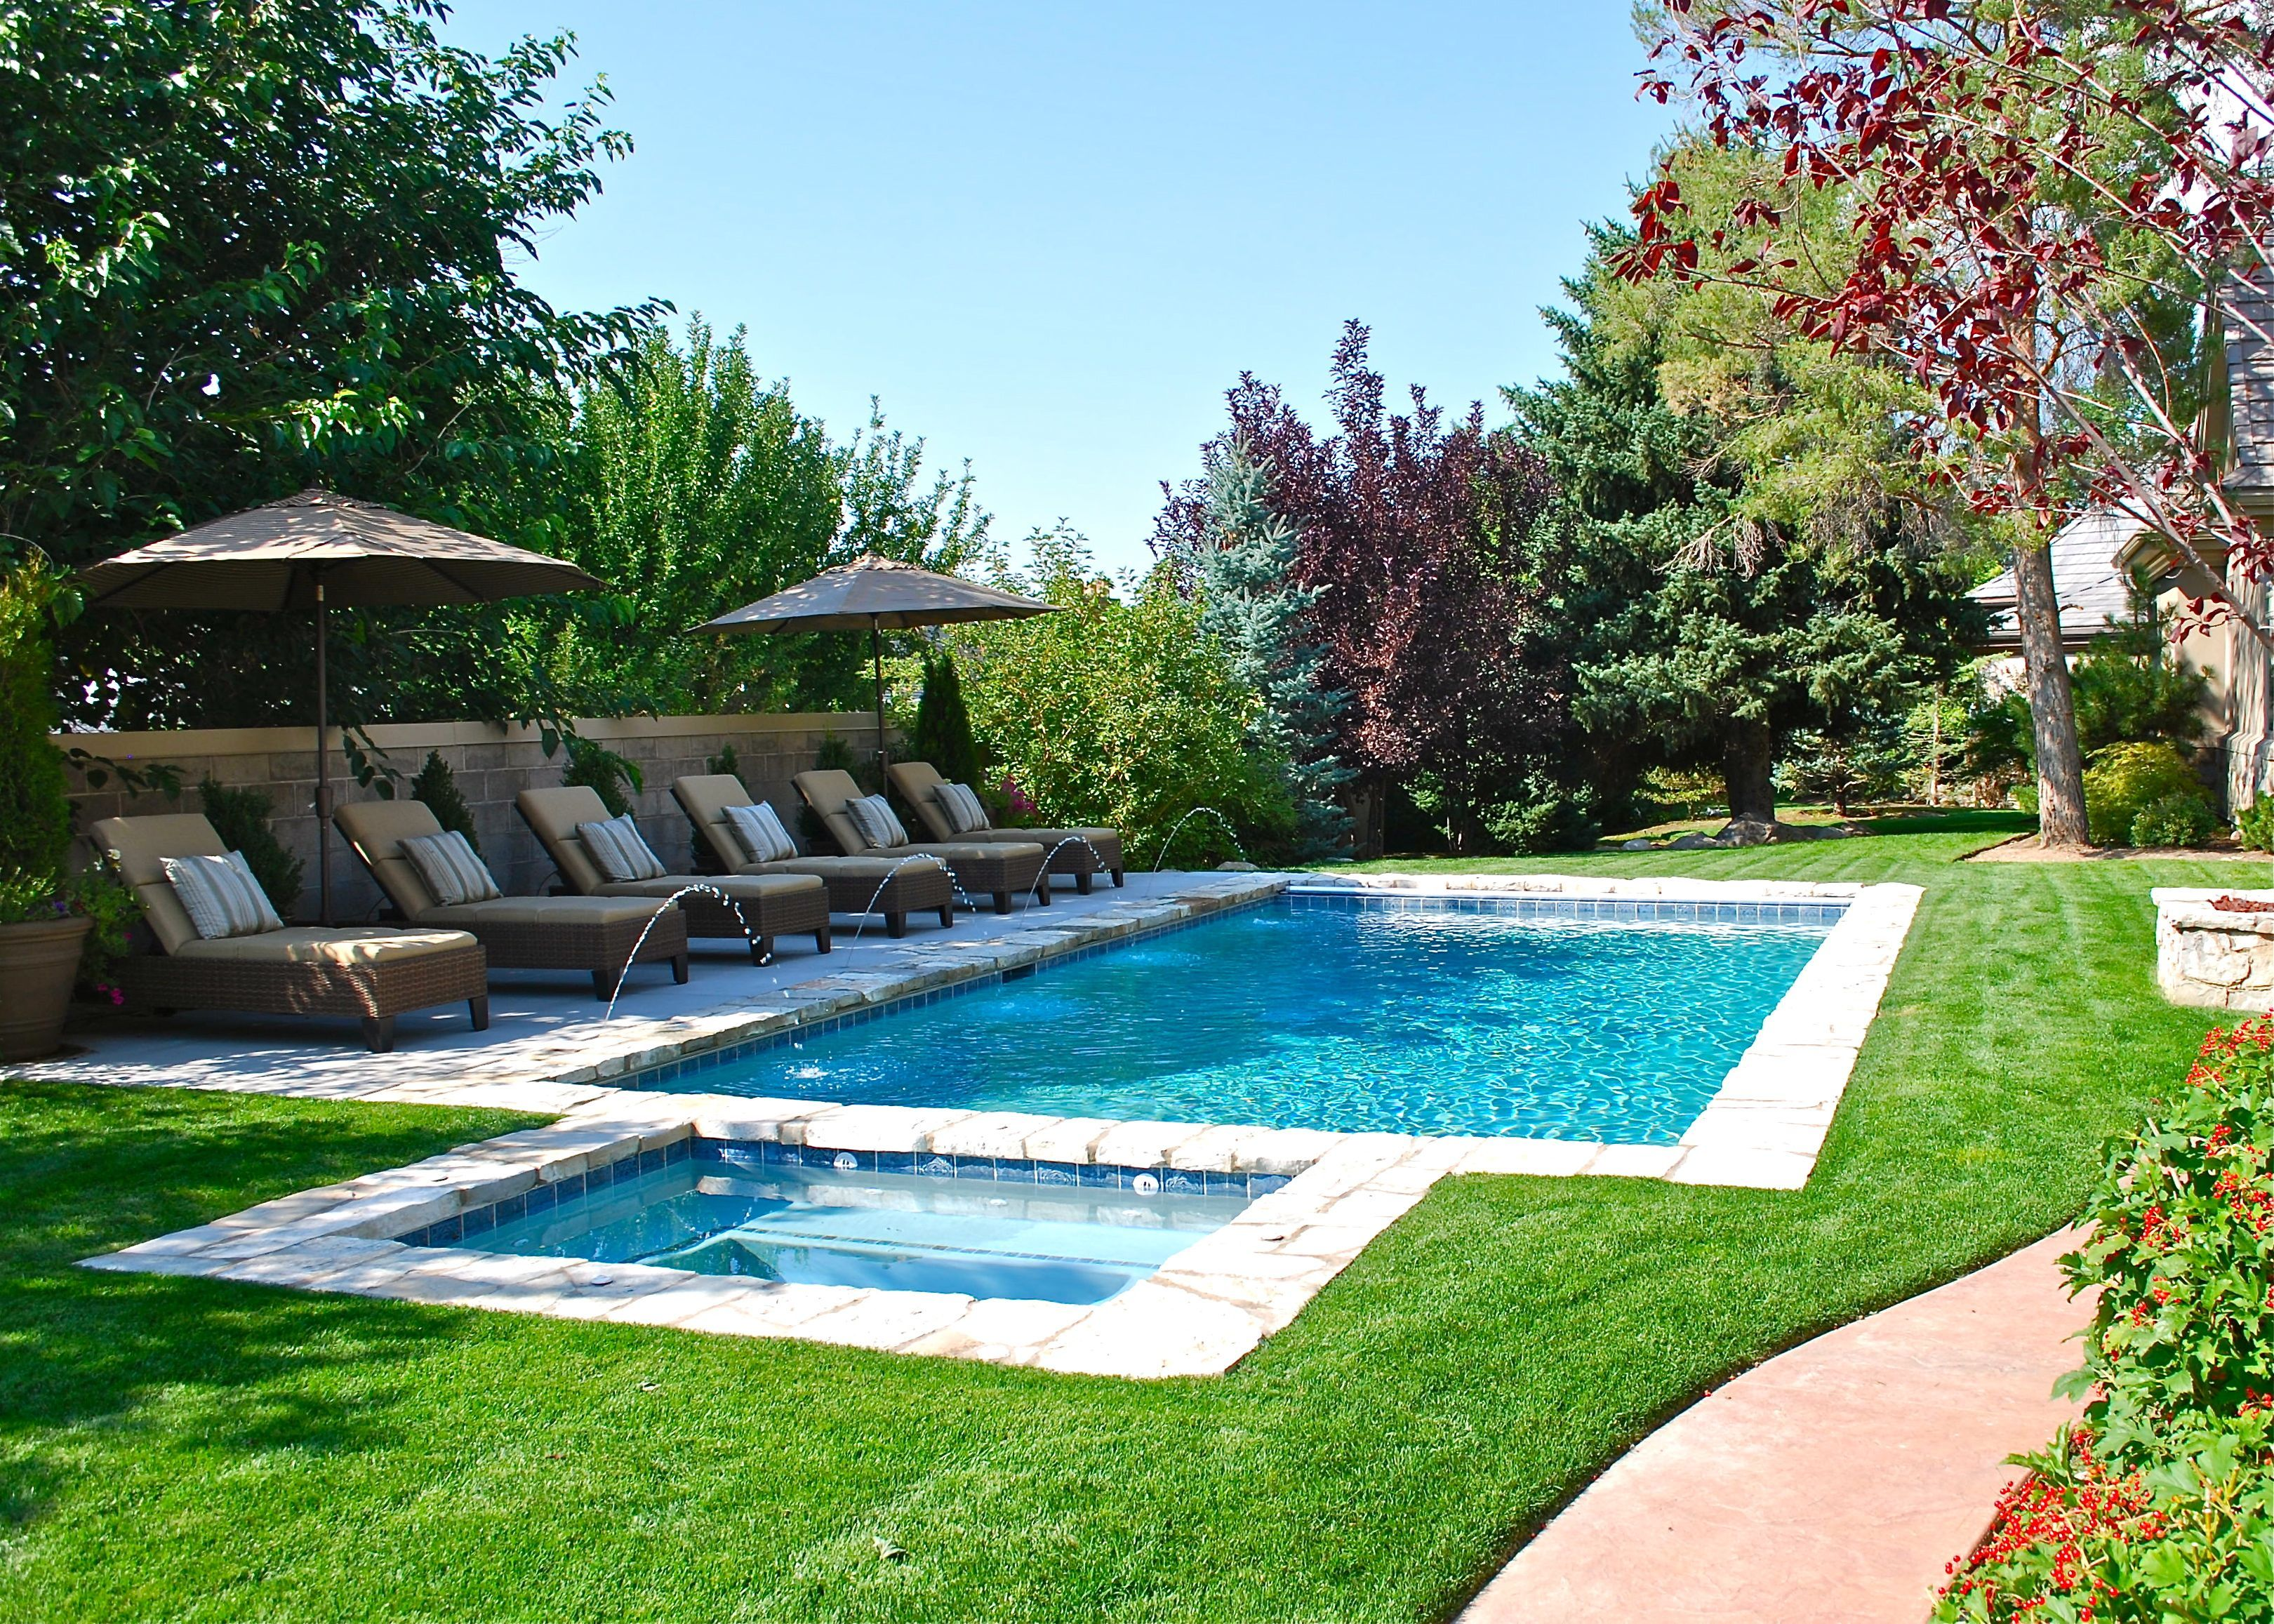 Backyard swimming pool with minimal decking deckjets and for Simple backyard pools